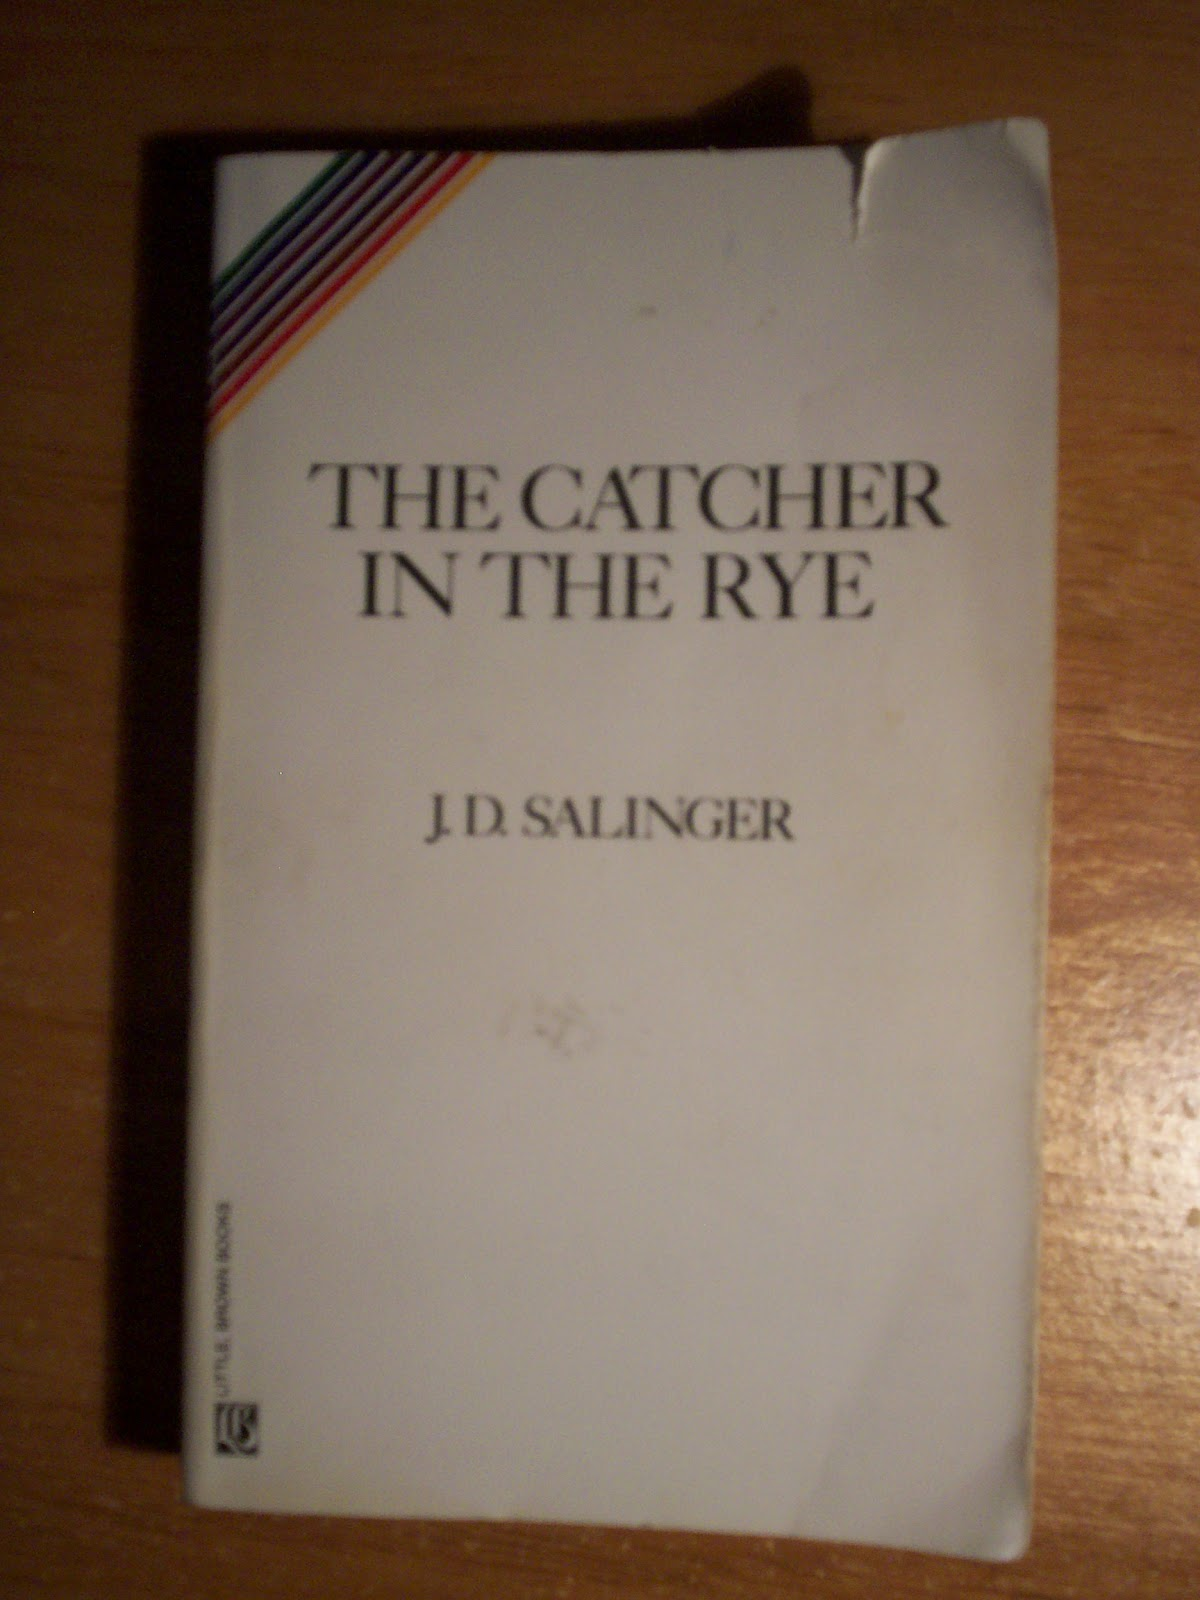 an analysis of the novel catcher in the rye and holdens view on the life by j d salinger Holden caulfield - the catcher in the rye  as the main character from the novel, catcher in the rye by jd salinger  person in holdens life and i.